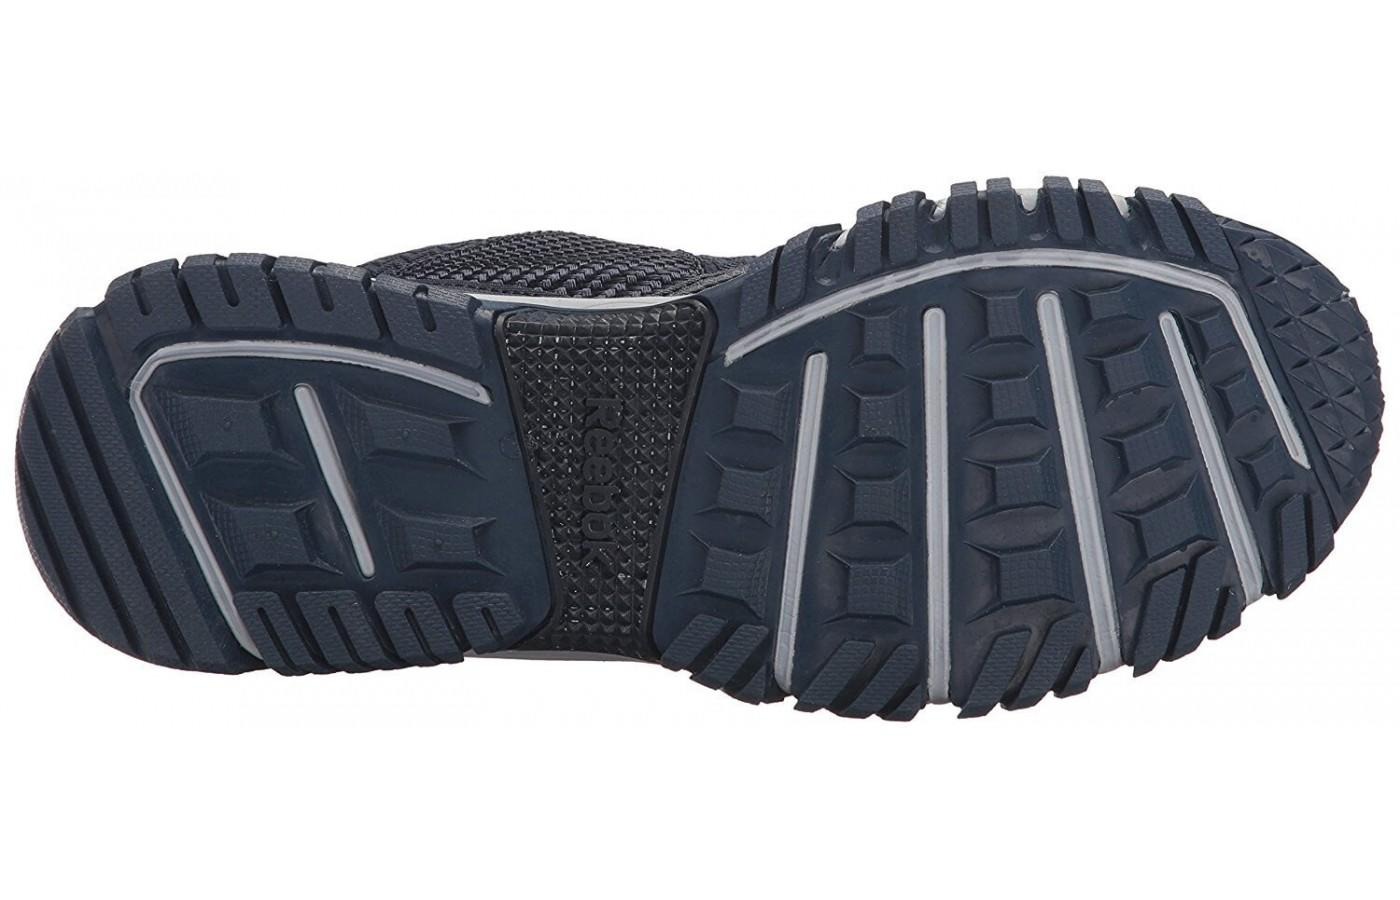 Reebok Ridgerider Trail 2.0 has a carbon rubber outsole